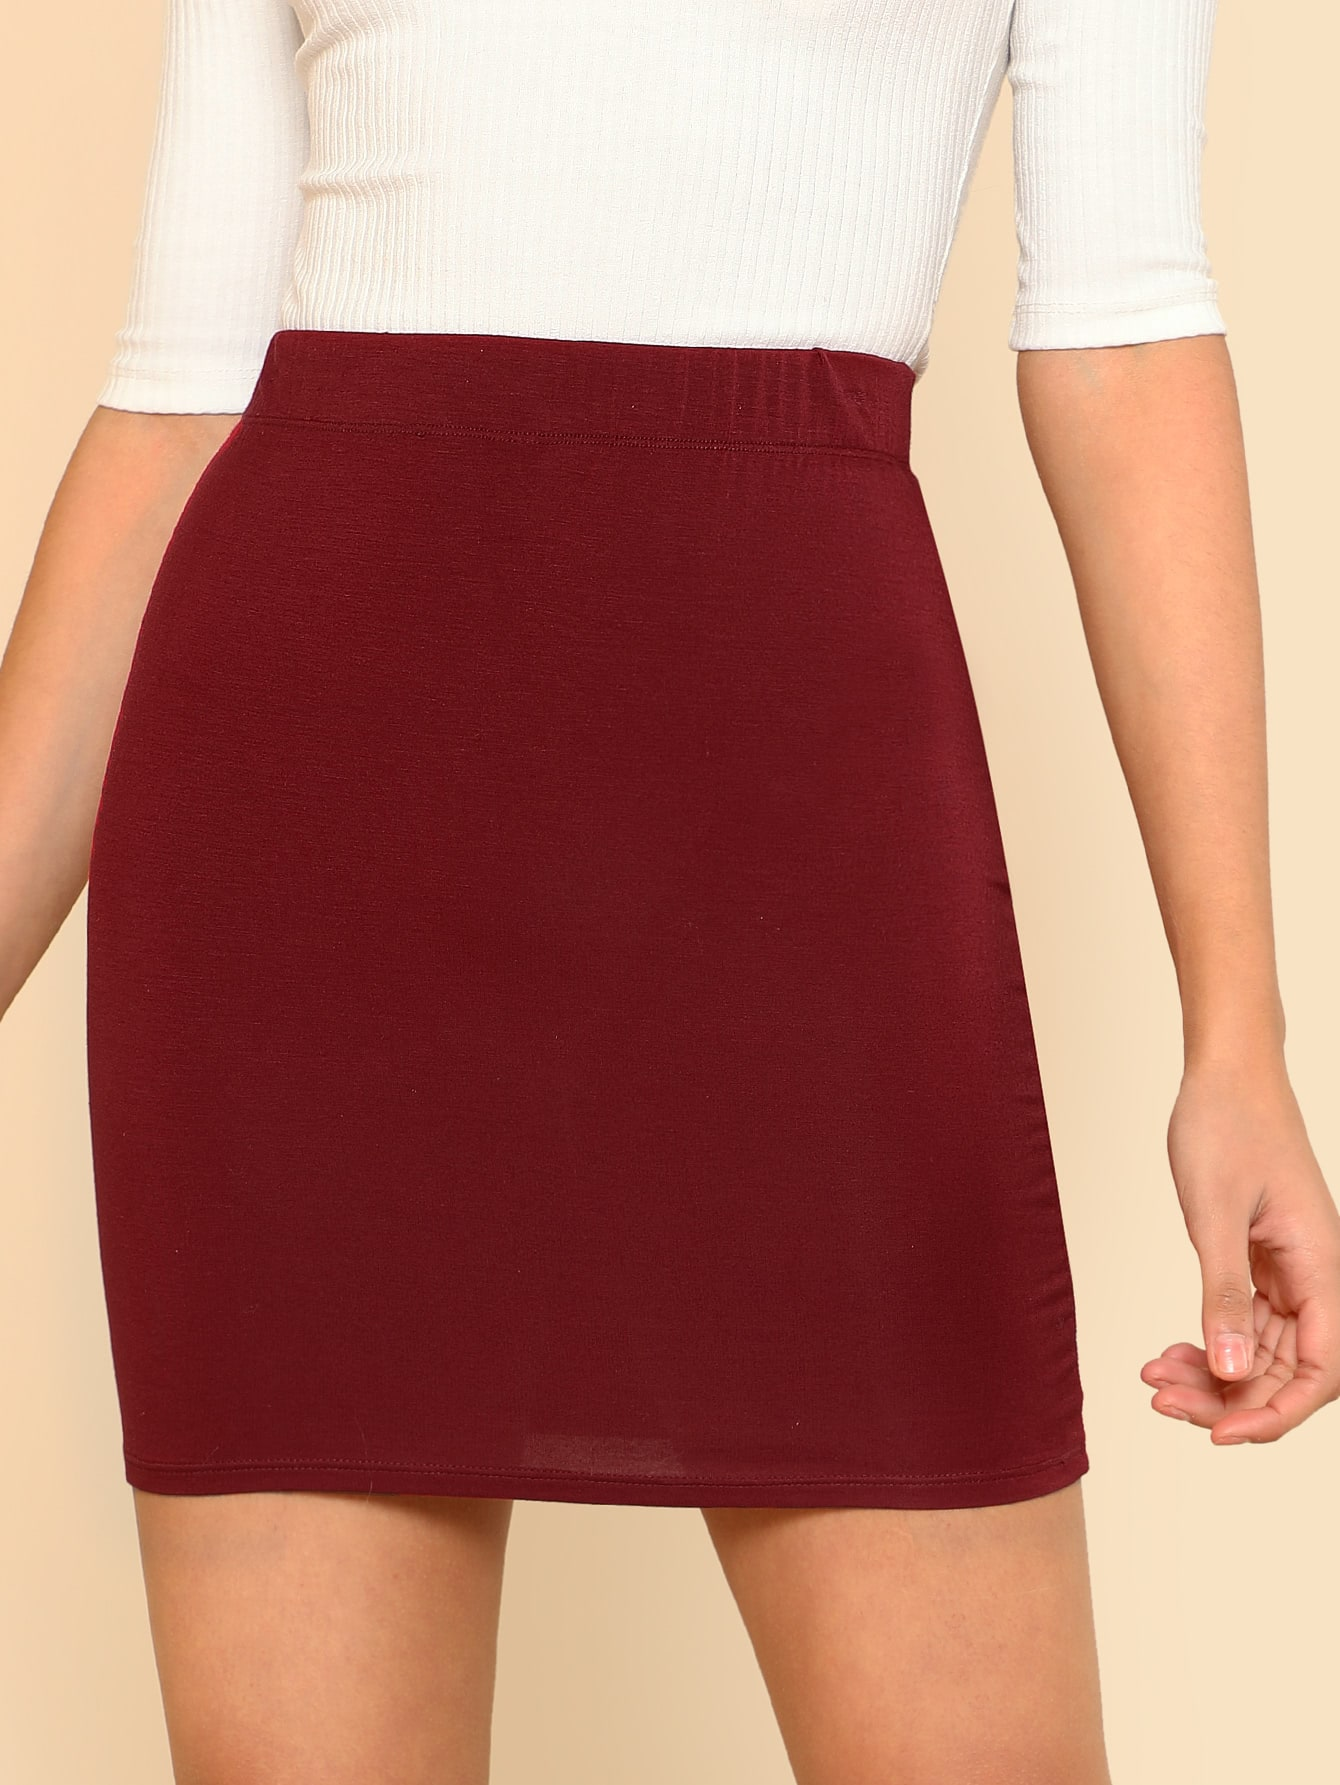 Solid Stretch Knit Bodycon Skirt solid ruched knit skirt